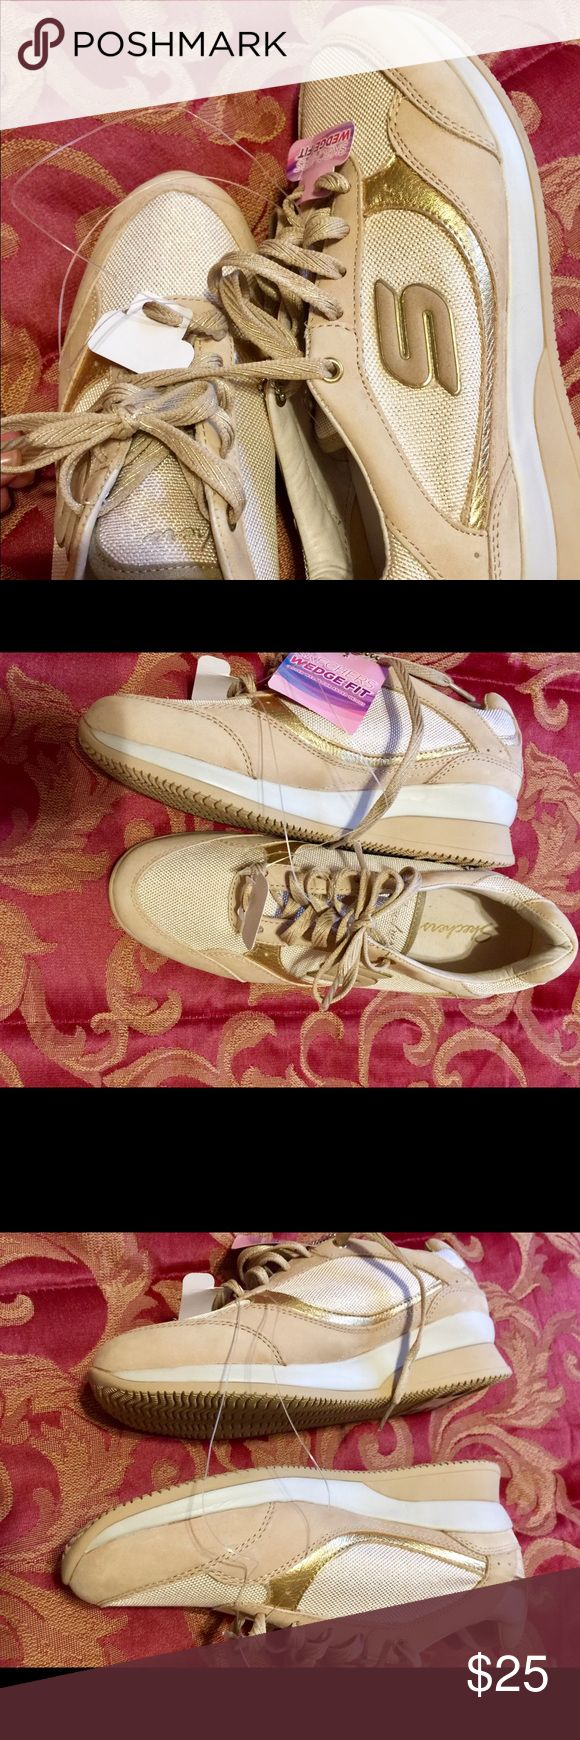 NWT 💕SKECHERS Wedge Fit Shoes Tan Sz 7 Sketchers Wedge Fit shoes, tan and gold color. Size 7 but feet better on sz 6.5 Skechers Shoes Sneakers